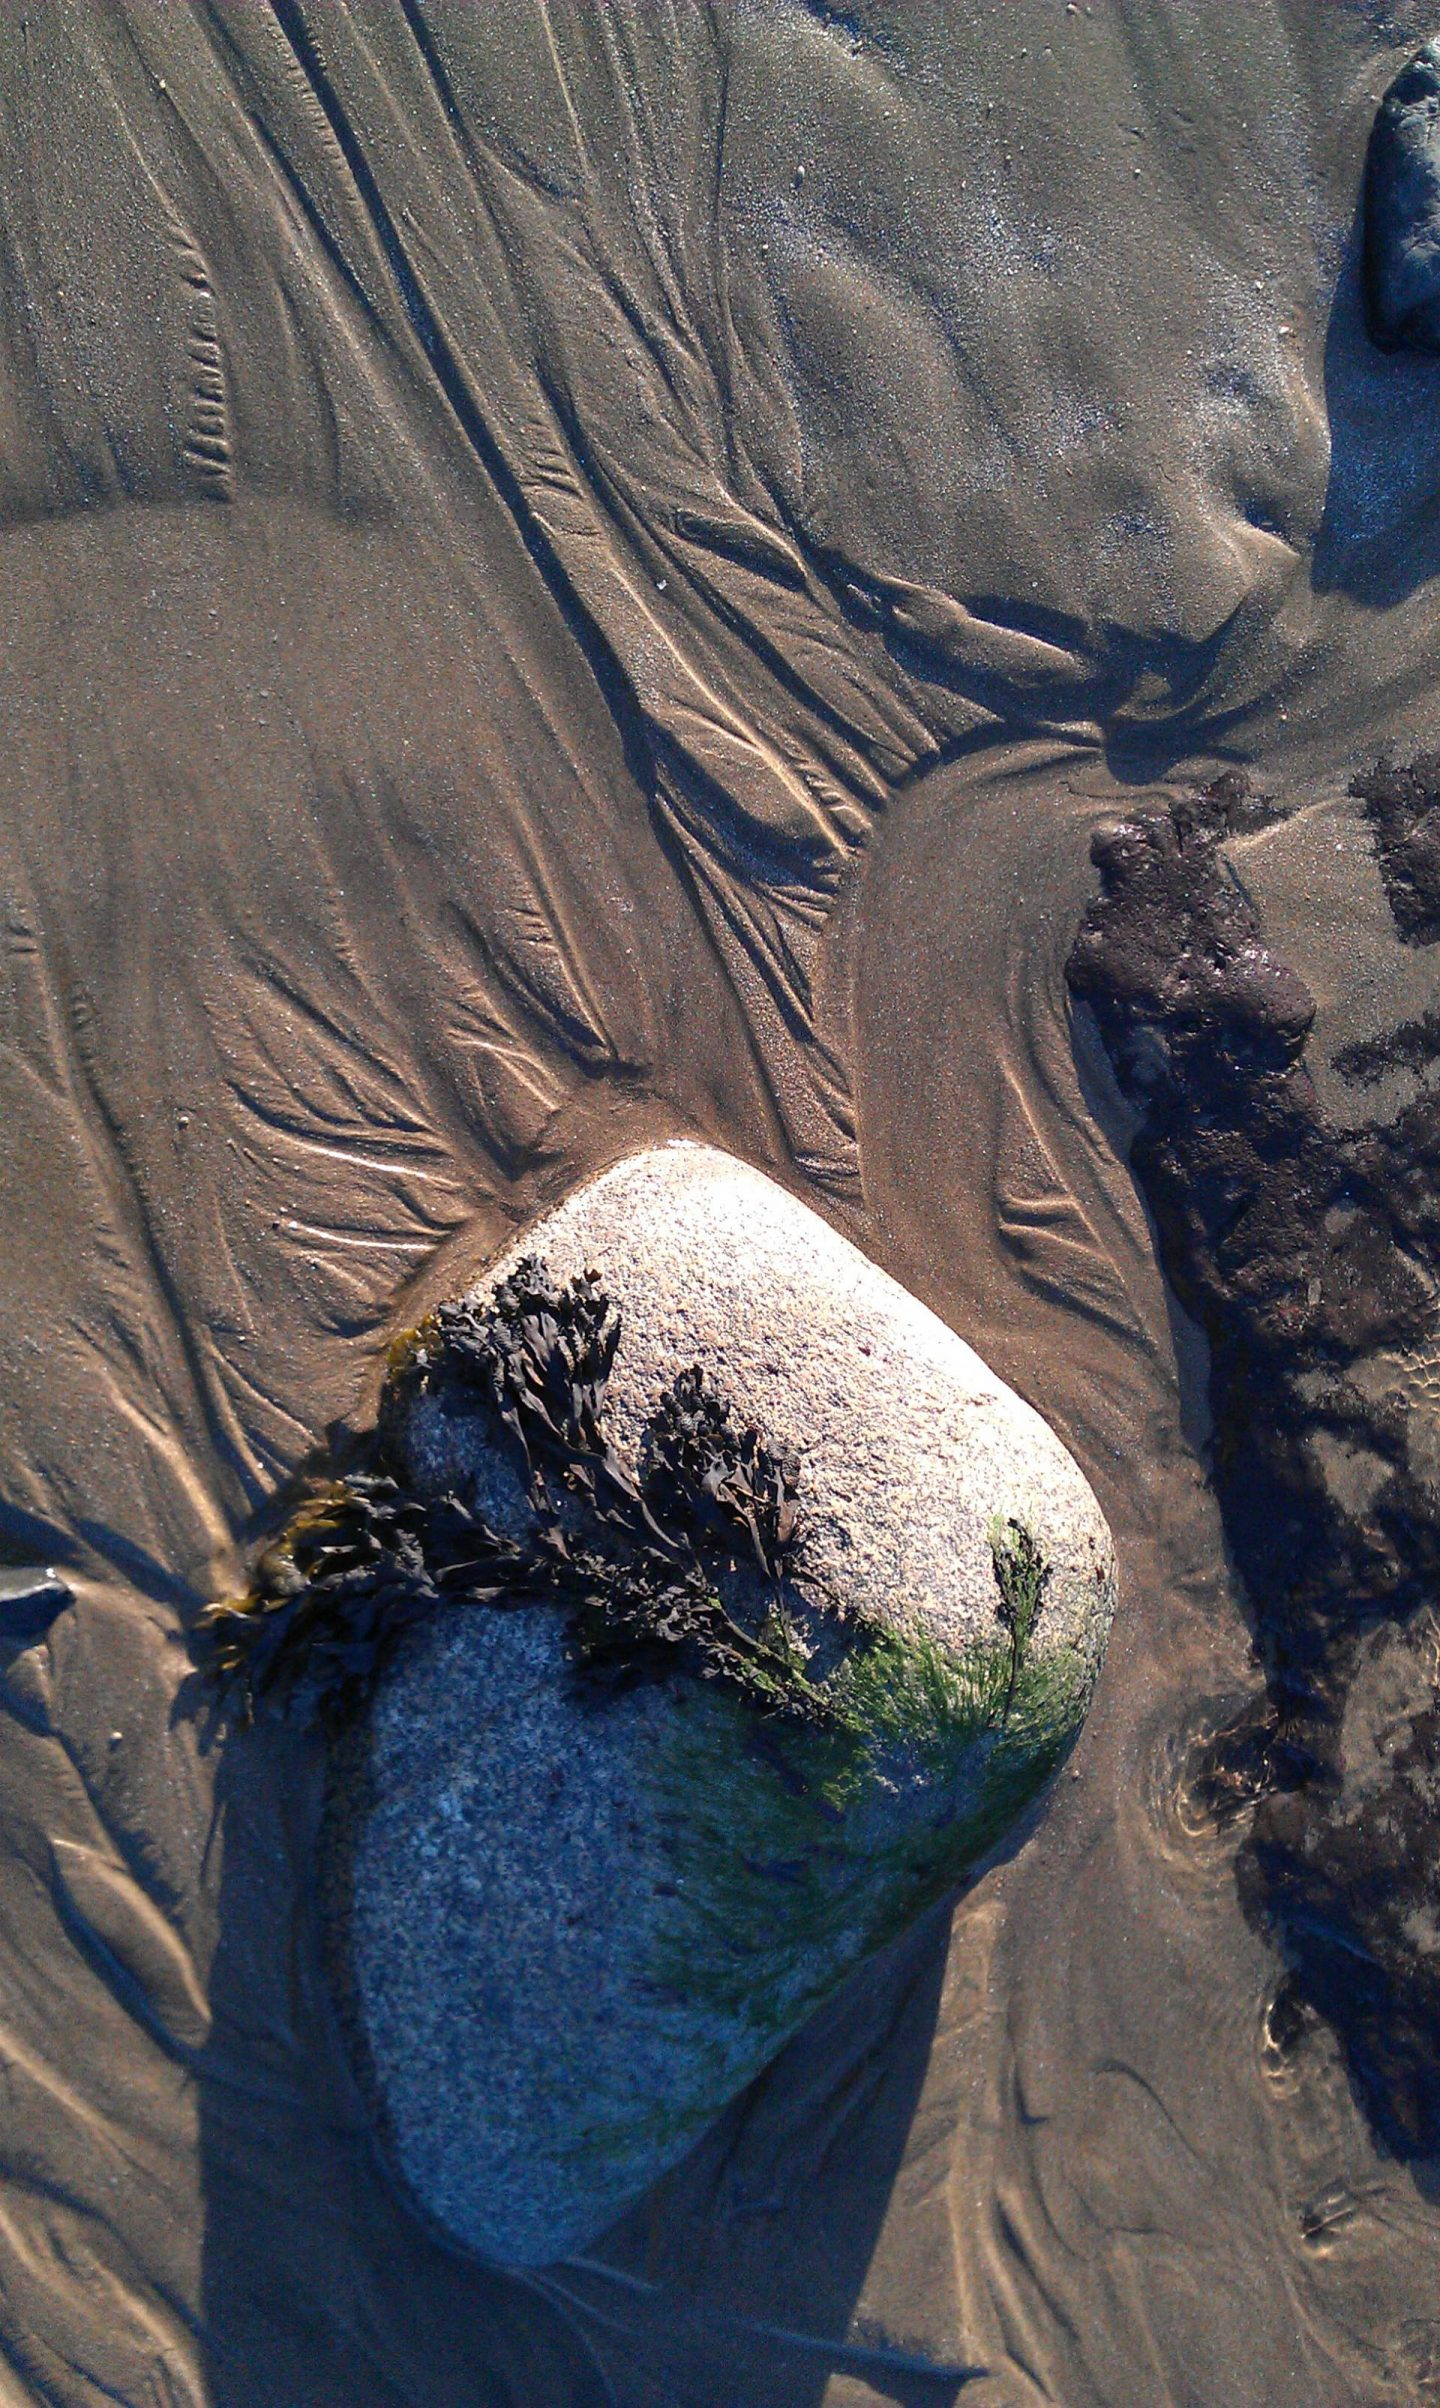 stone and seaweed in the sand